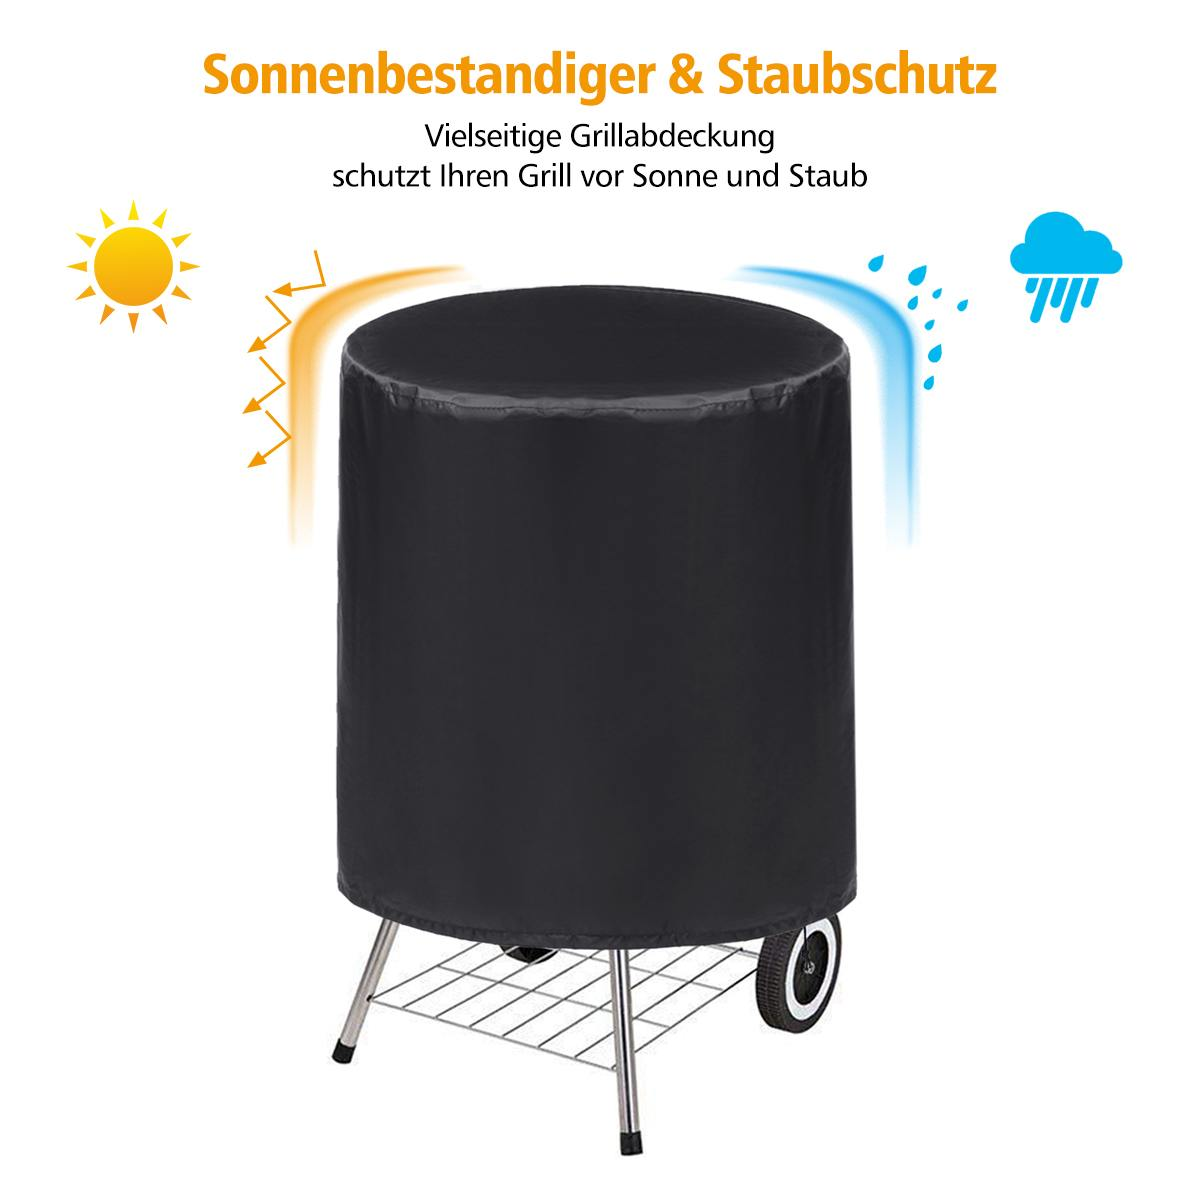 Black Waterproof BBQ Grill Barbeque Barbacoa Anti Dust Protector Dome Cover Outdoor For Gas Charcoal Barbecue 710x680mm